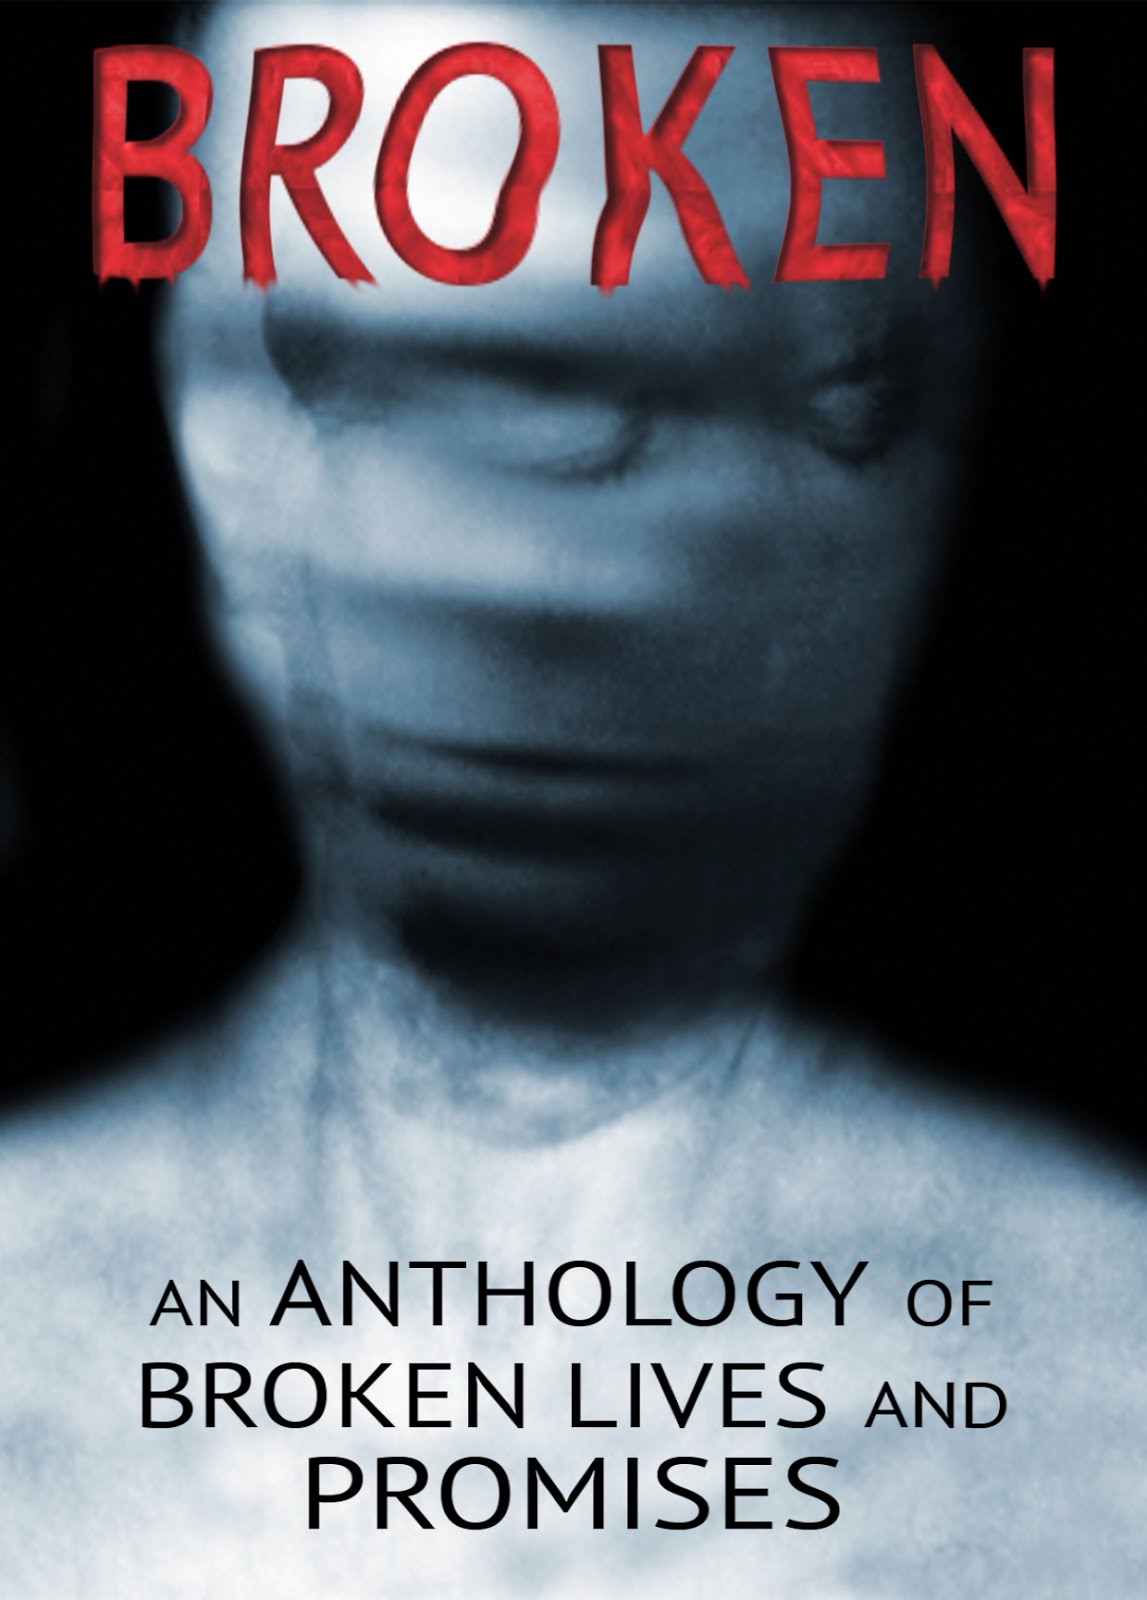 Broken - An Anthology